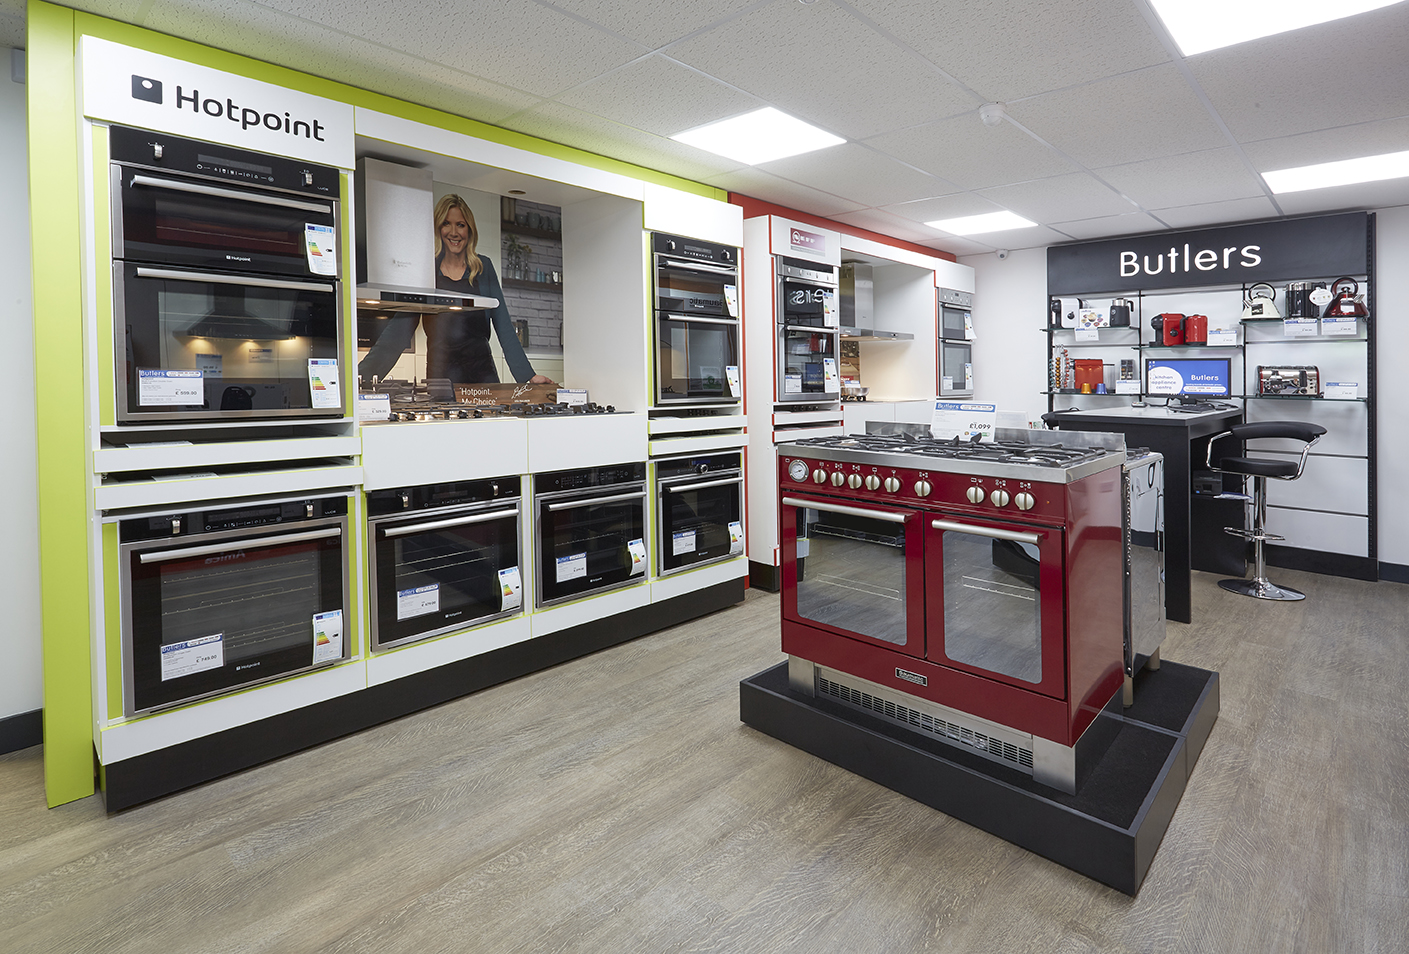 Butlers Electrical - Queensferry Store Refit Case Study | Replan ...